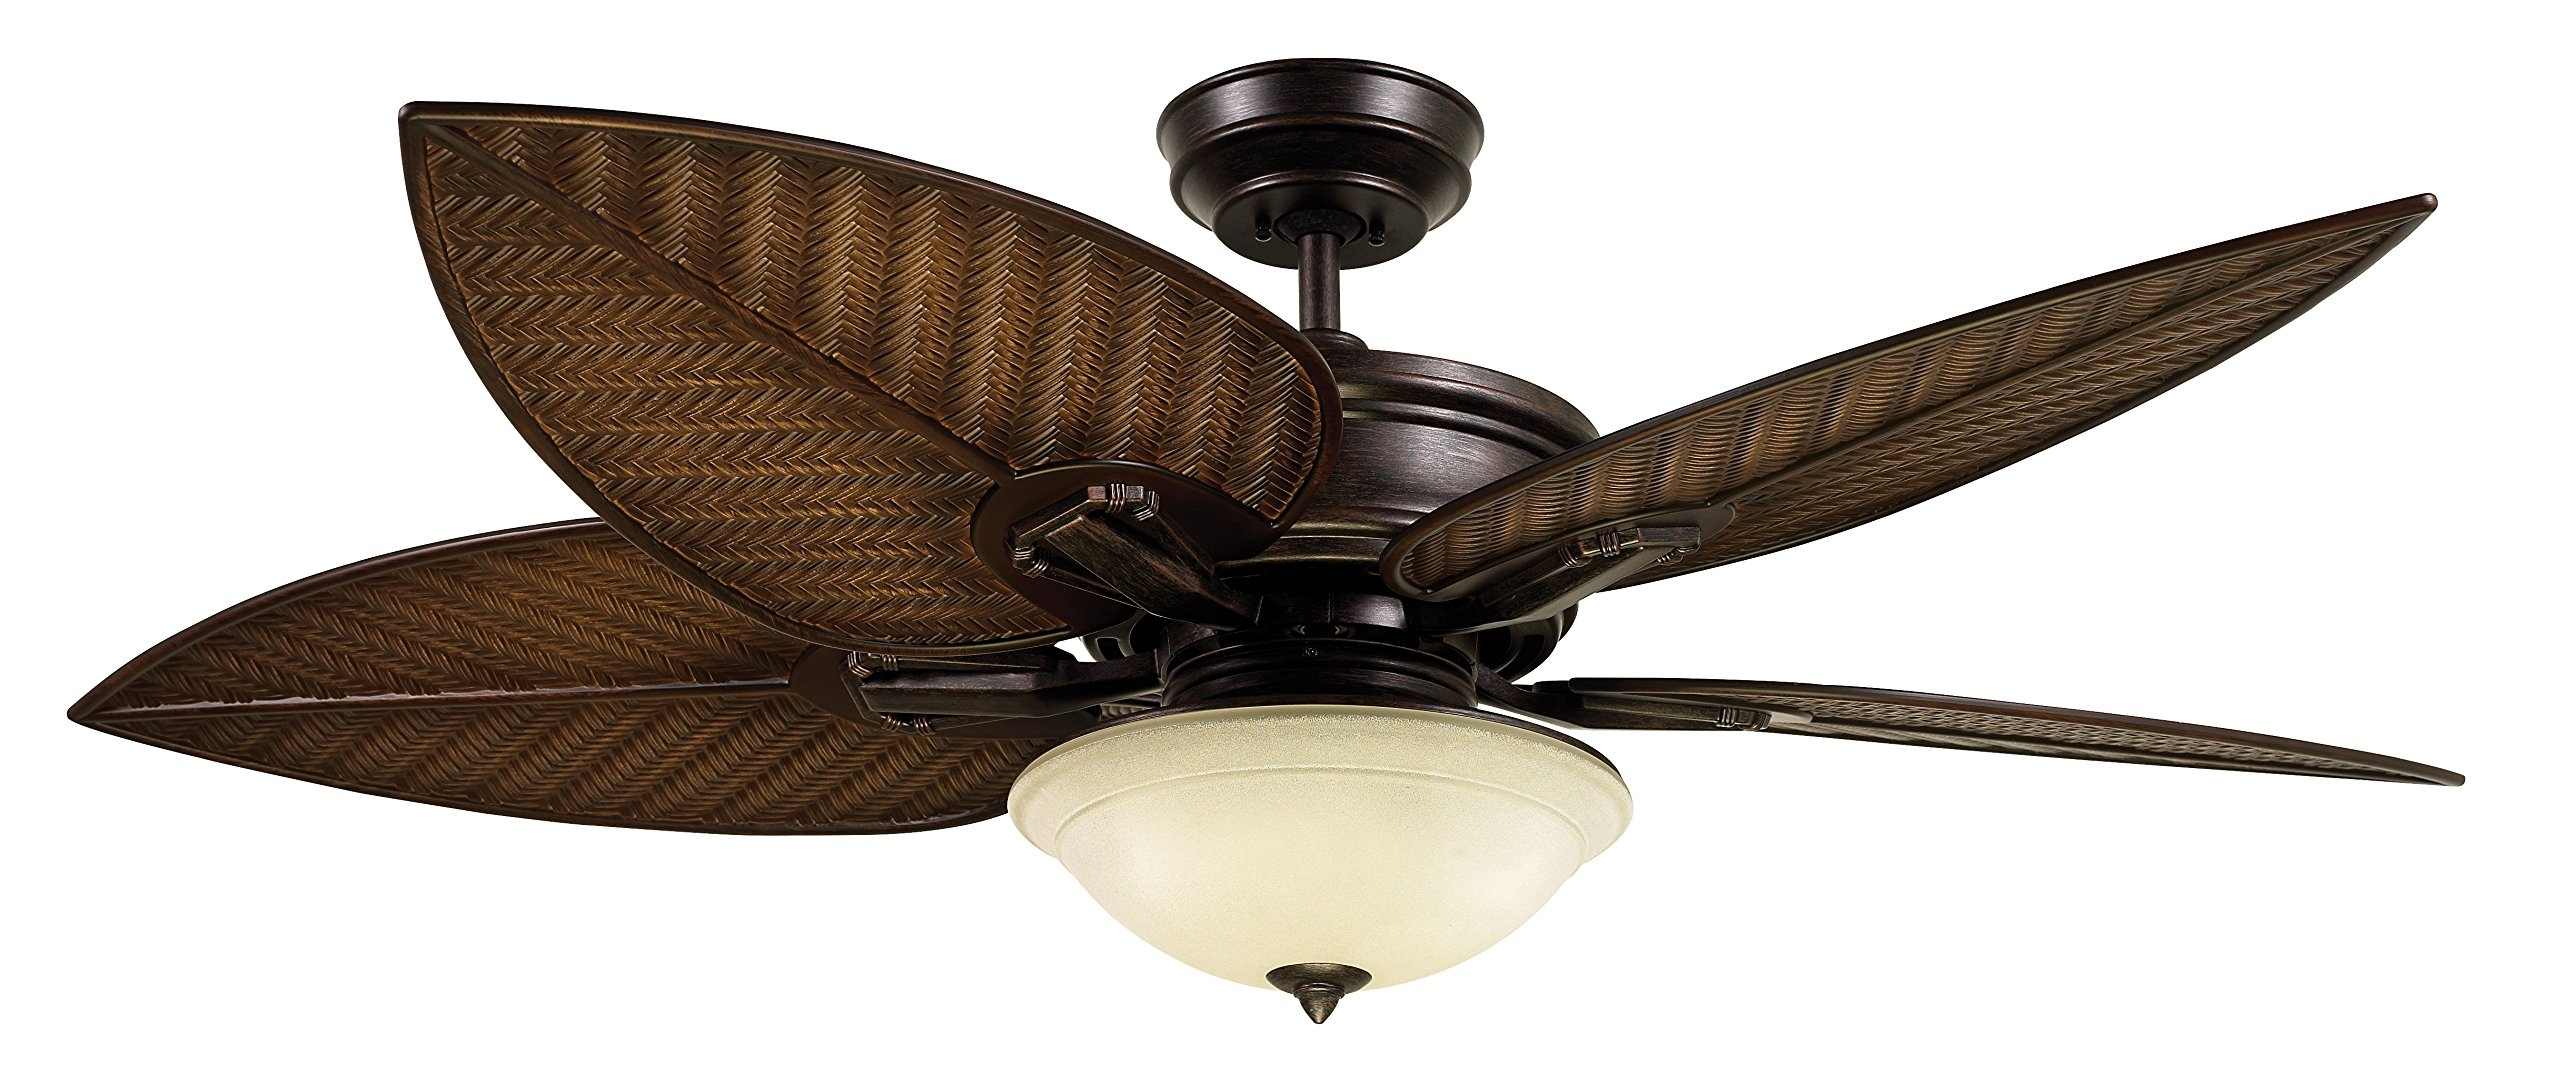 Cheap Outdoor Ceiling Fan, Find Outdoor Ceiling Fan Deals On Line At Within Most Up To Date Casa Vieja Outdoor Ceiling Fans (View 11 of 20)